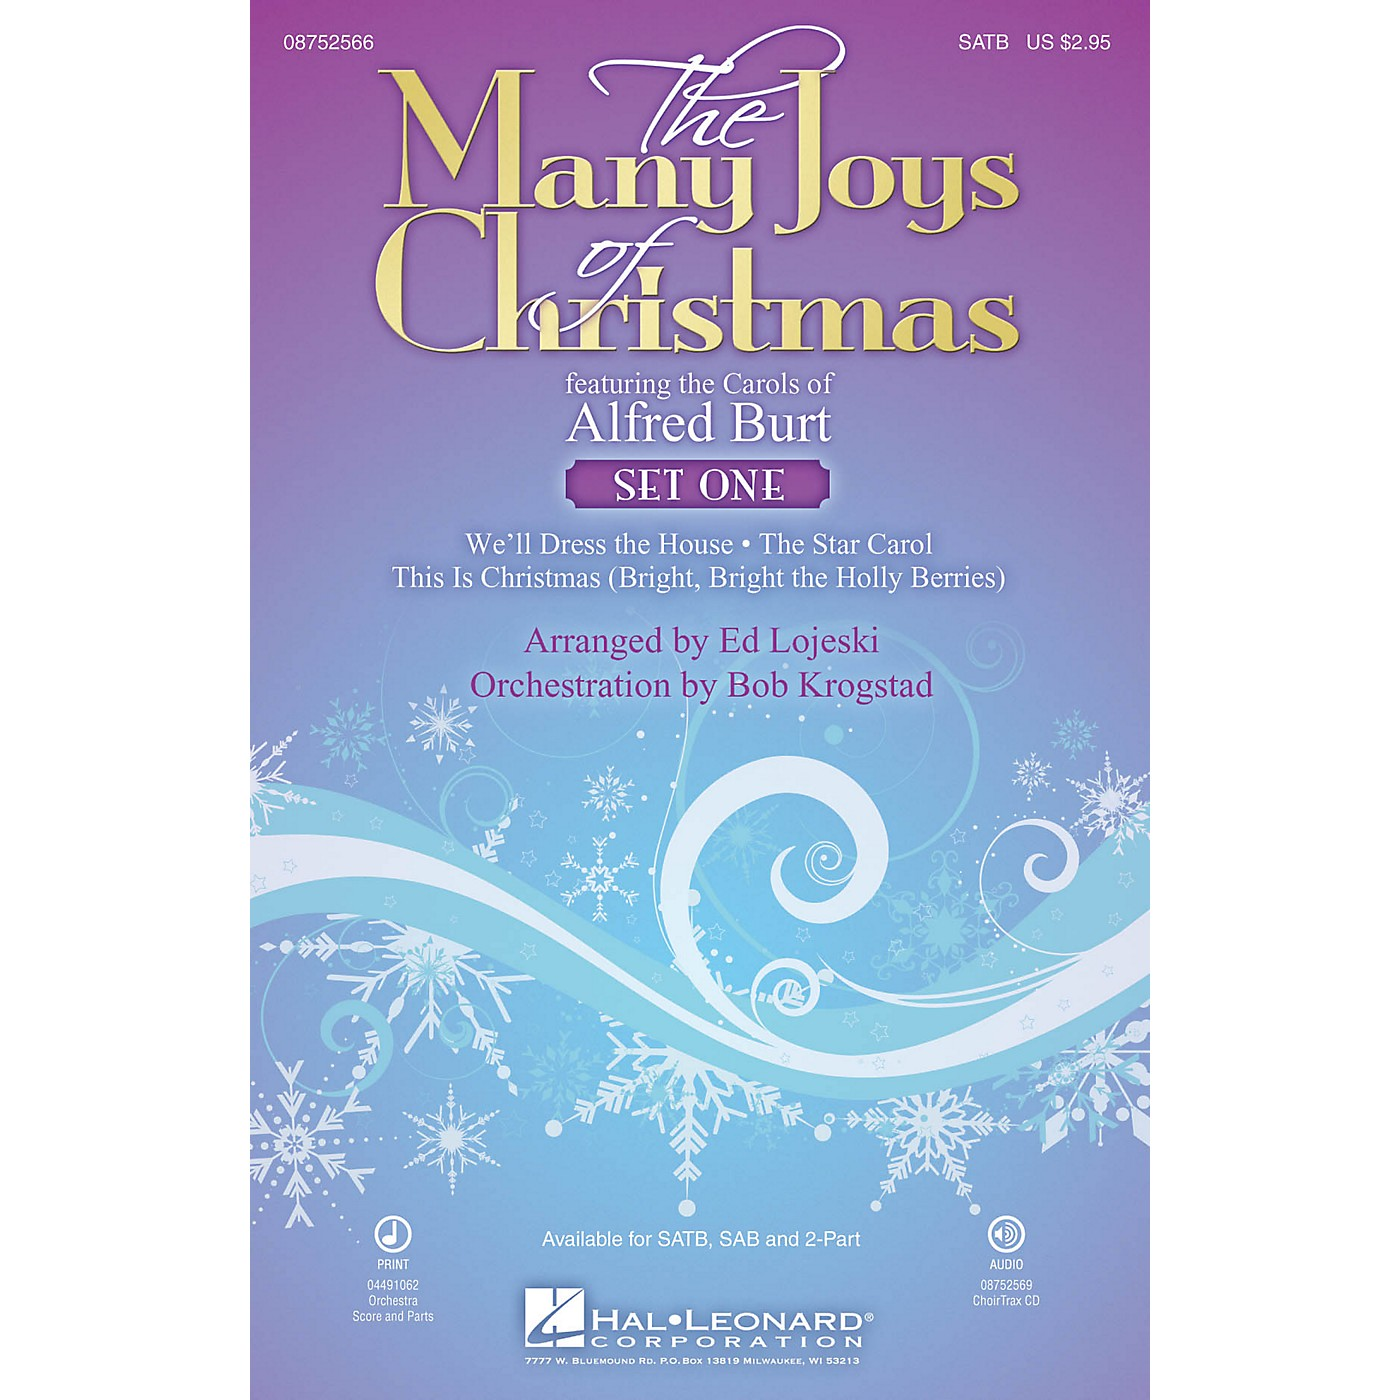 Hal Leonard The Many Joys of Christmas (Set One) (Featuring the Carols of Alfred Burt) SATB arranged by Ed Lojeski thumbnail